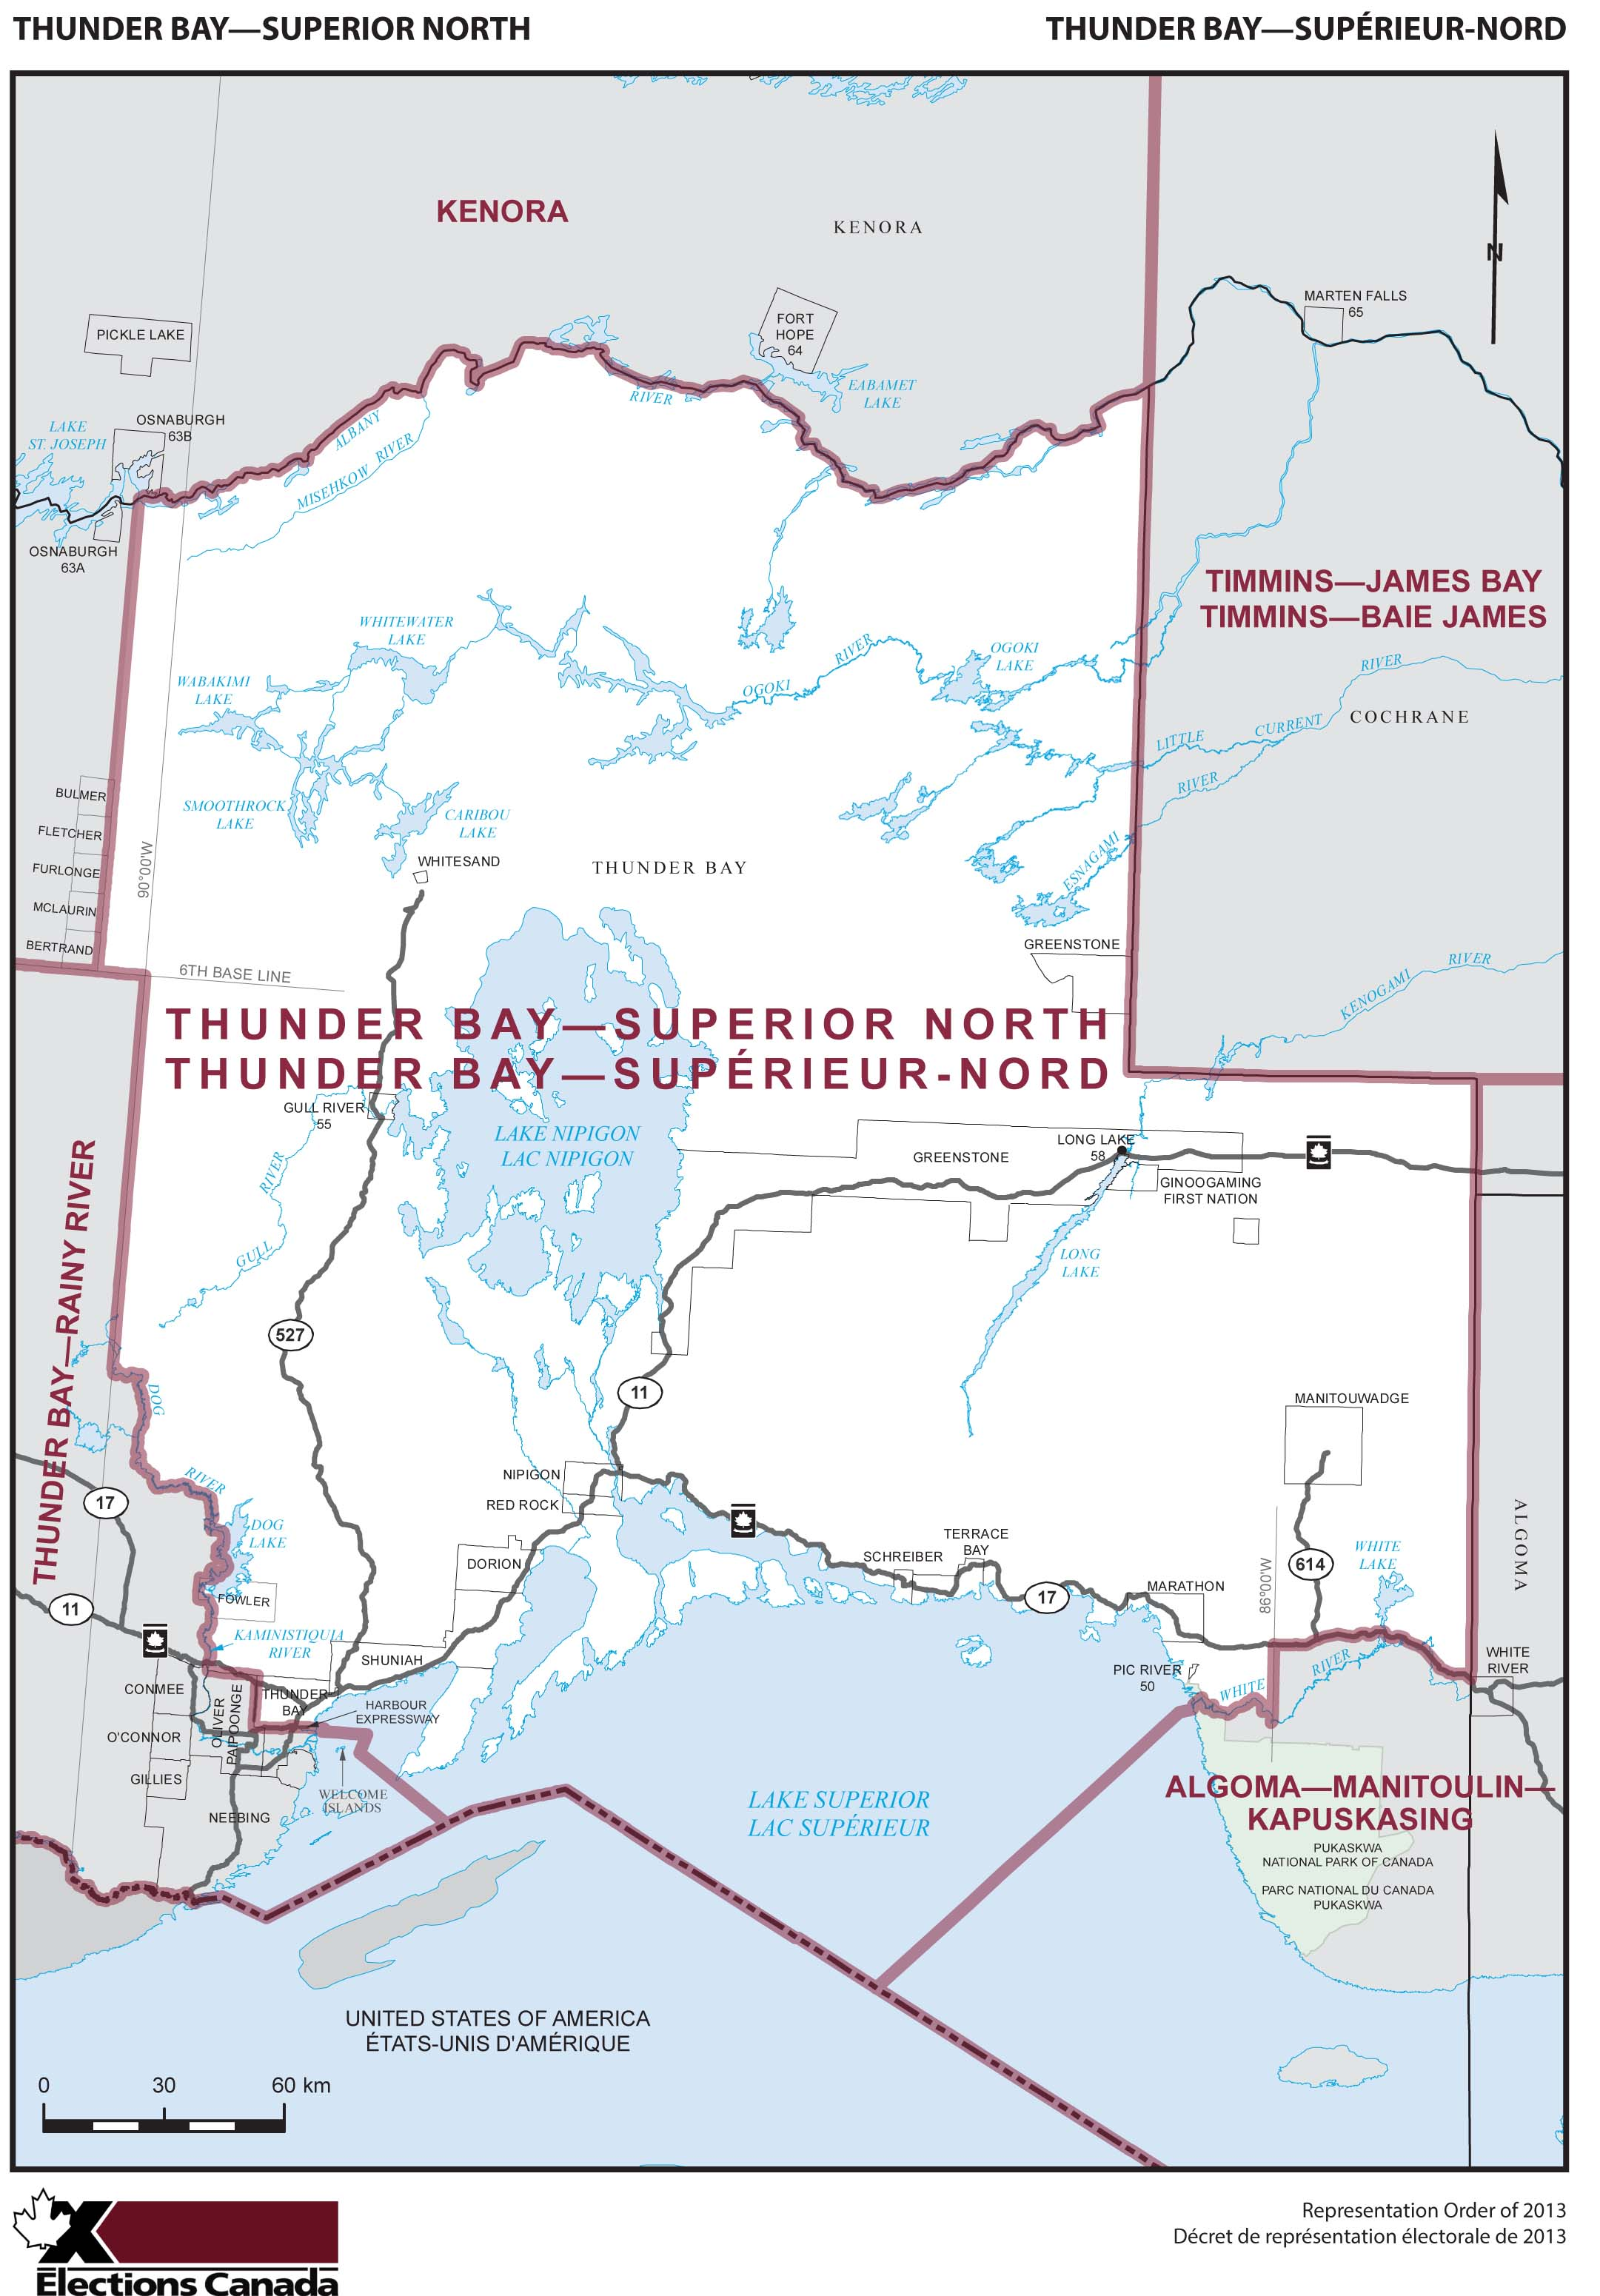 Map: Thunder Bay--Superior North, Federal electoral district, 2013 Representation Order (in white), Ontario